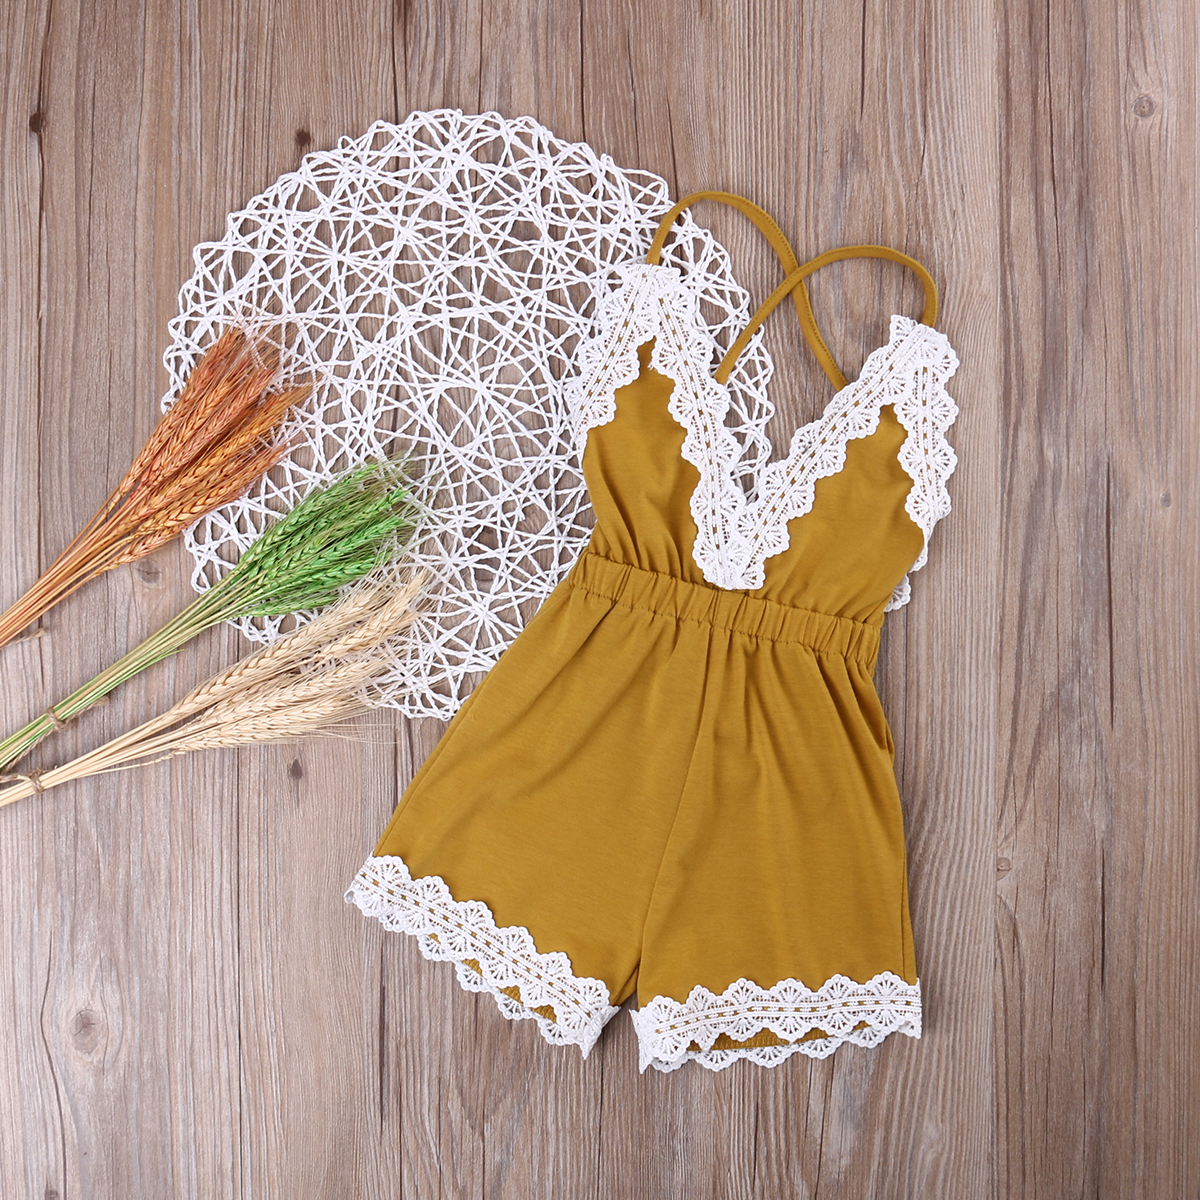 Adorable Newborn Baby Girls Clothing Romper Sleeveless Backless V Neck Jumpsuit Flower Outfits Clothes New цены